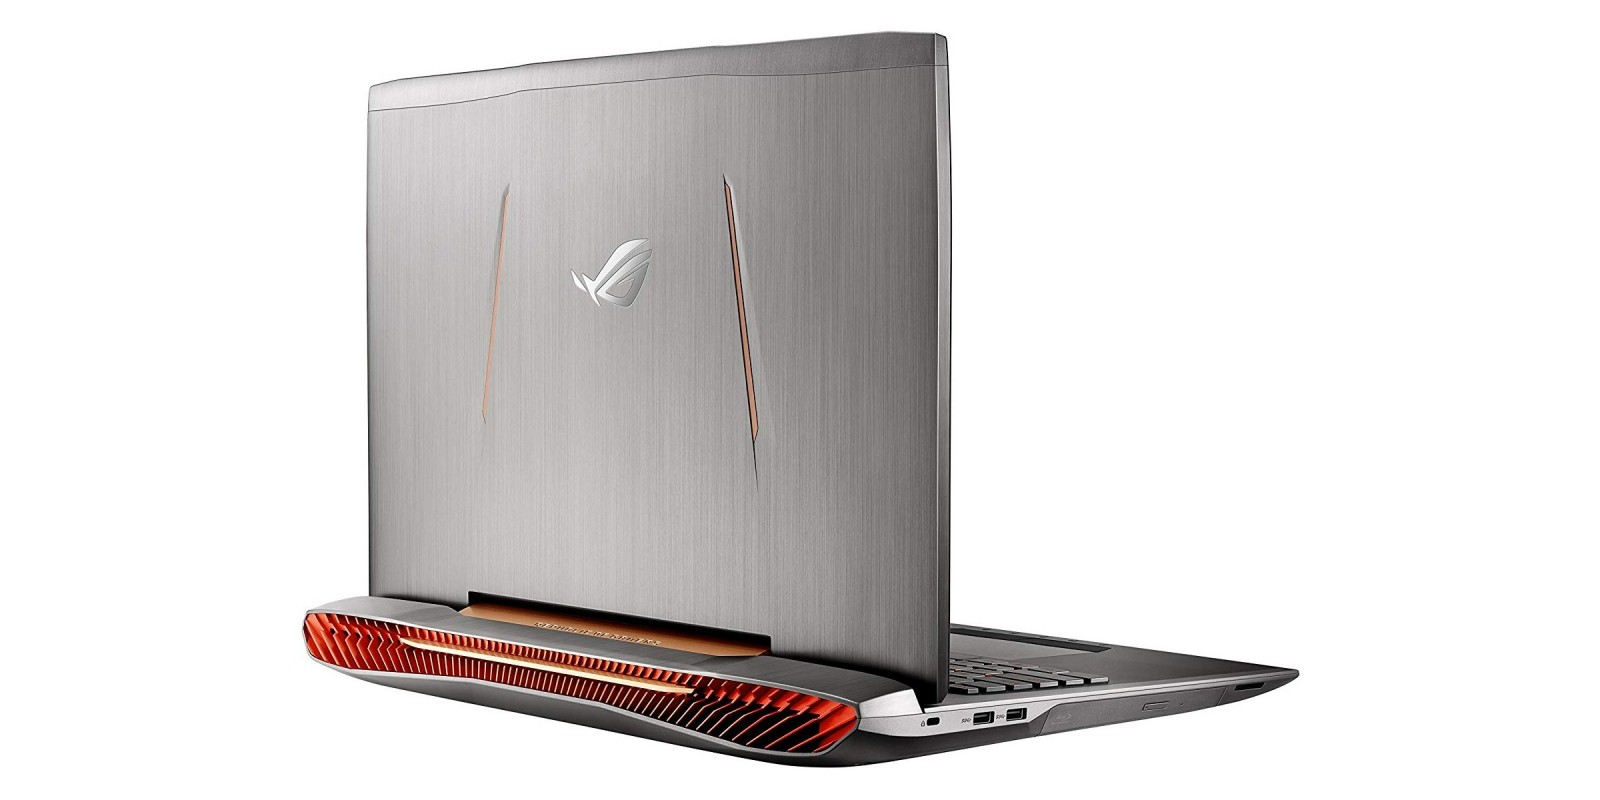 ASUS ROG G752VY-DH72 17-Inch Gaming Laptop L Shape